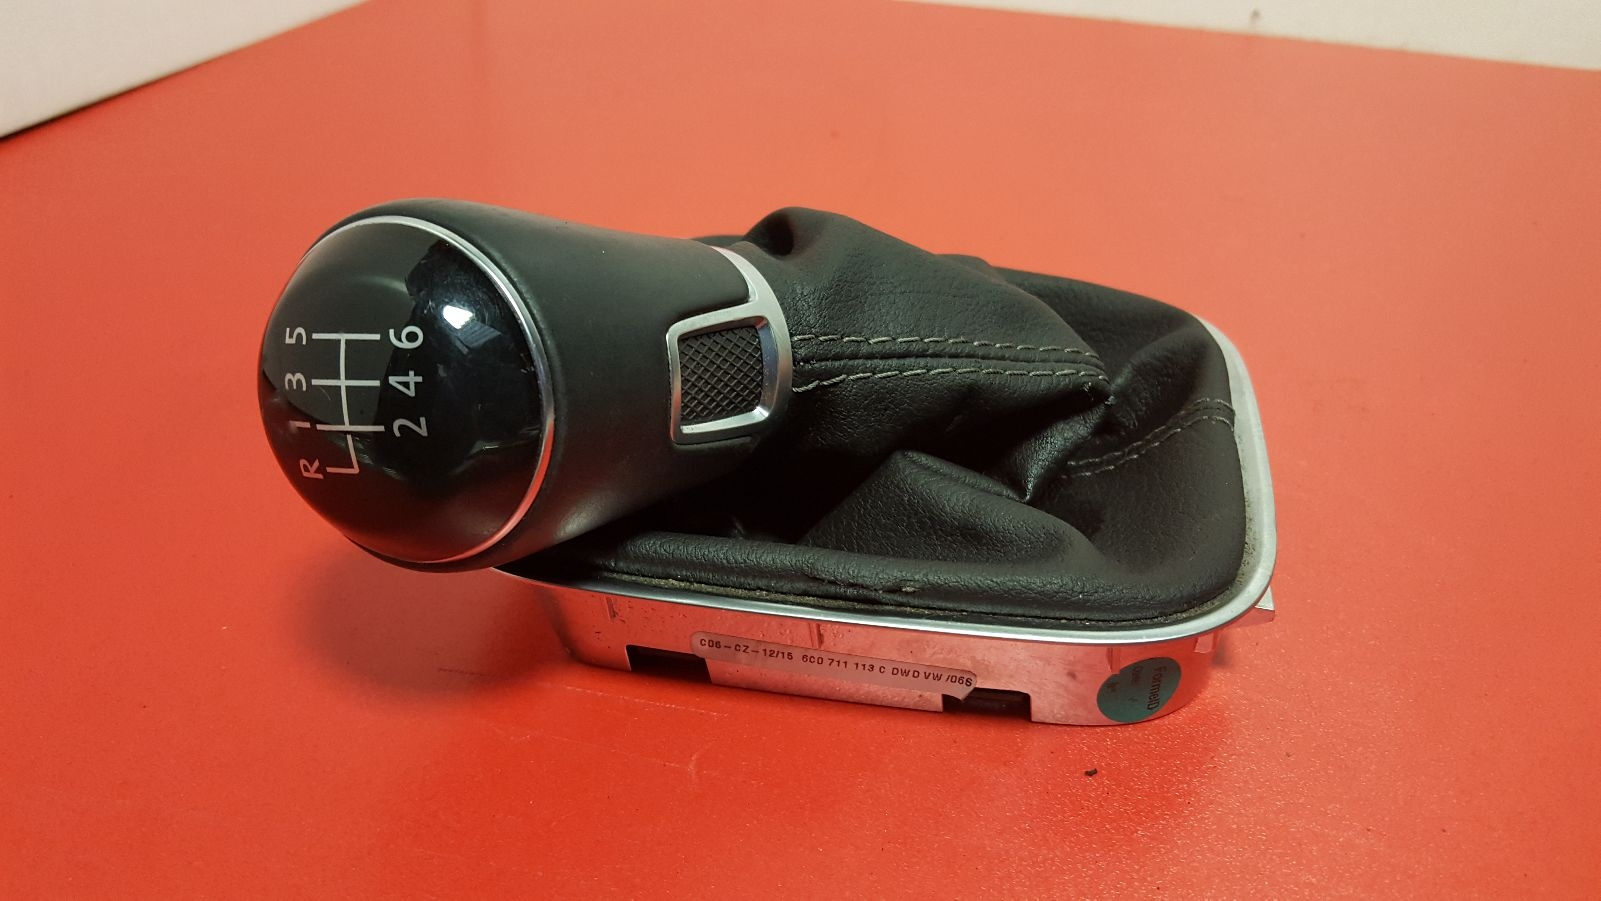 View Auto part Gear Stick/Shifter Volkswagen Polo 2015